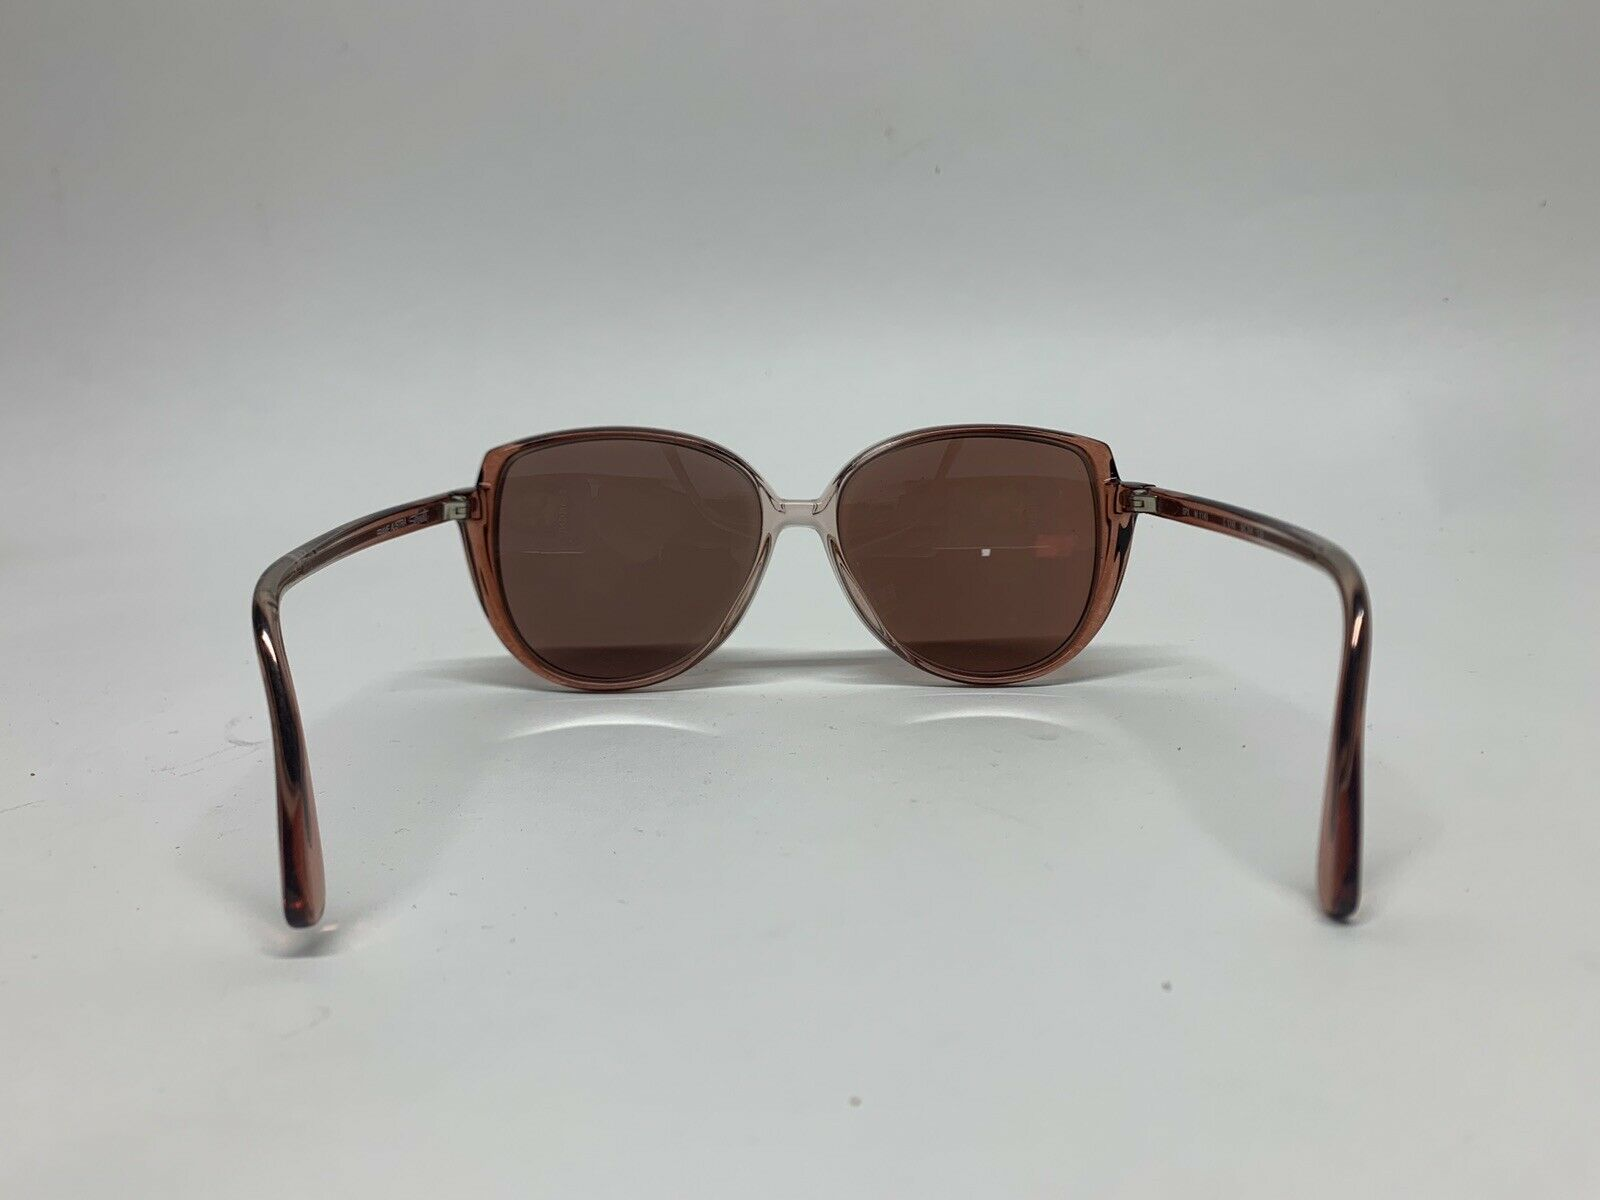 Vintage Austrian Sunglasses By Silhouette From Th… - image 5